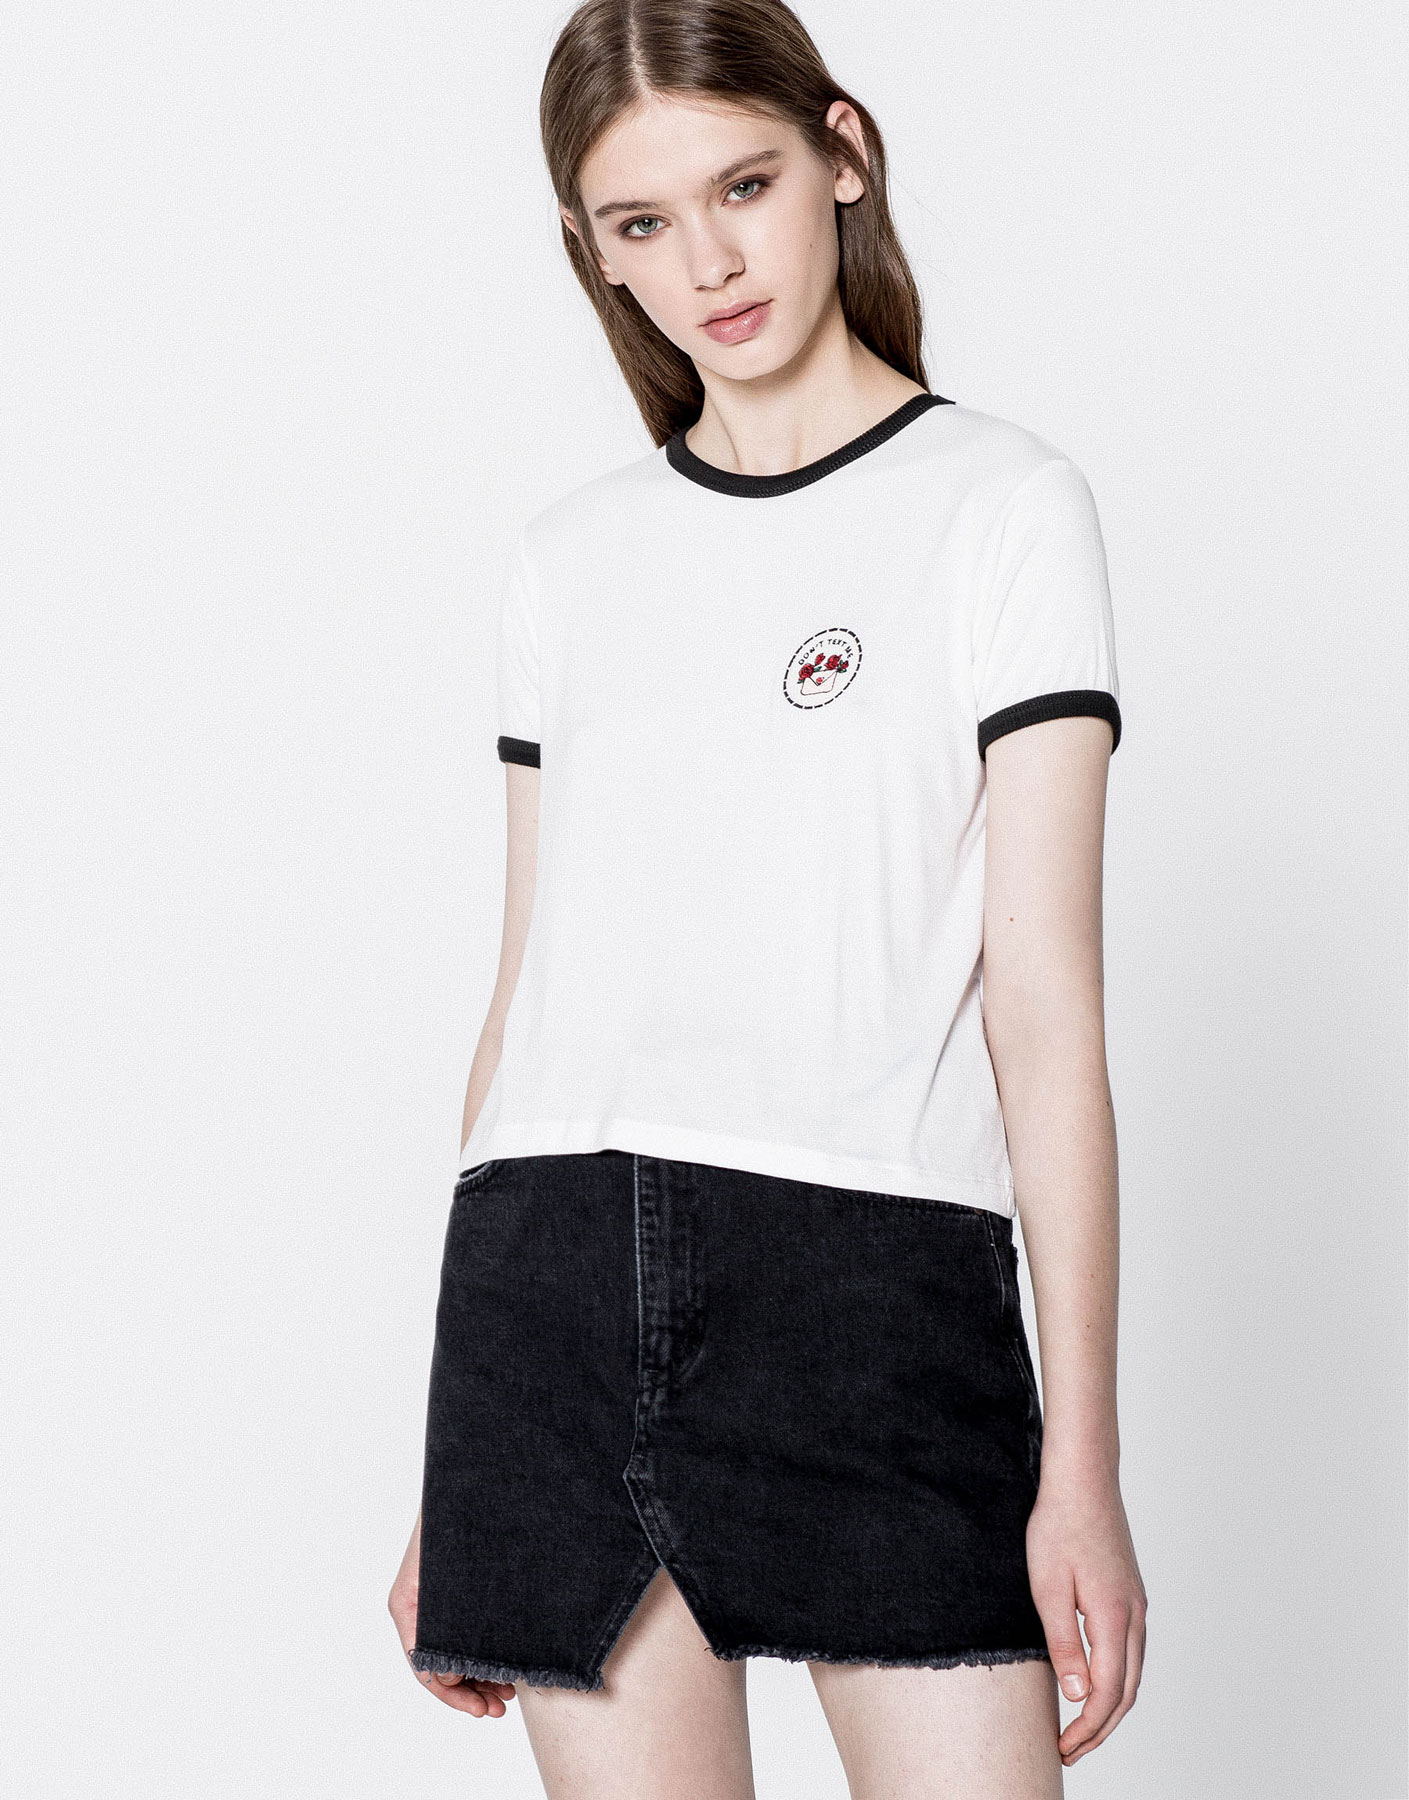 Roses envelope patch T-shirt